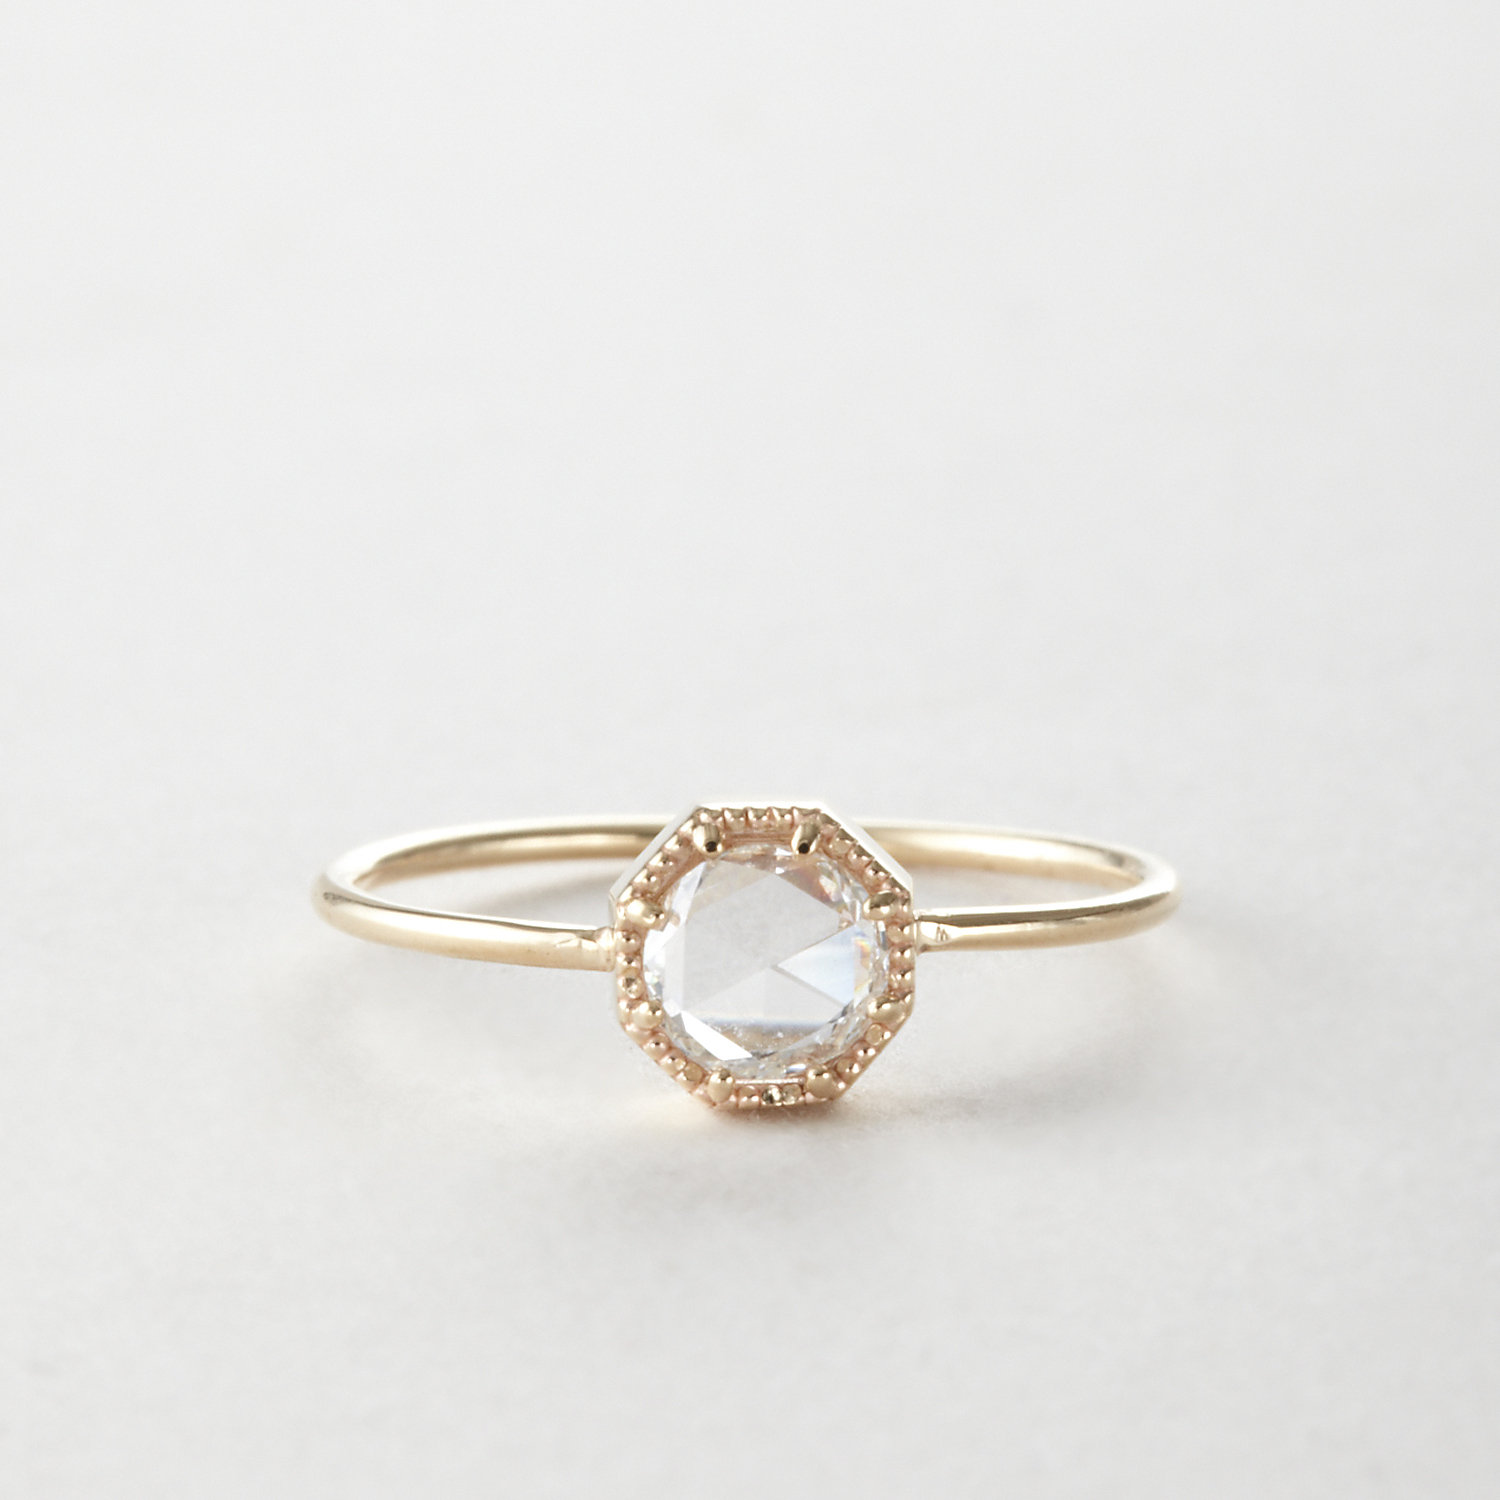 CROWN BEZEL RING